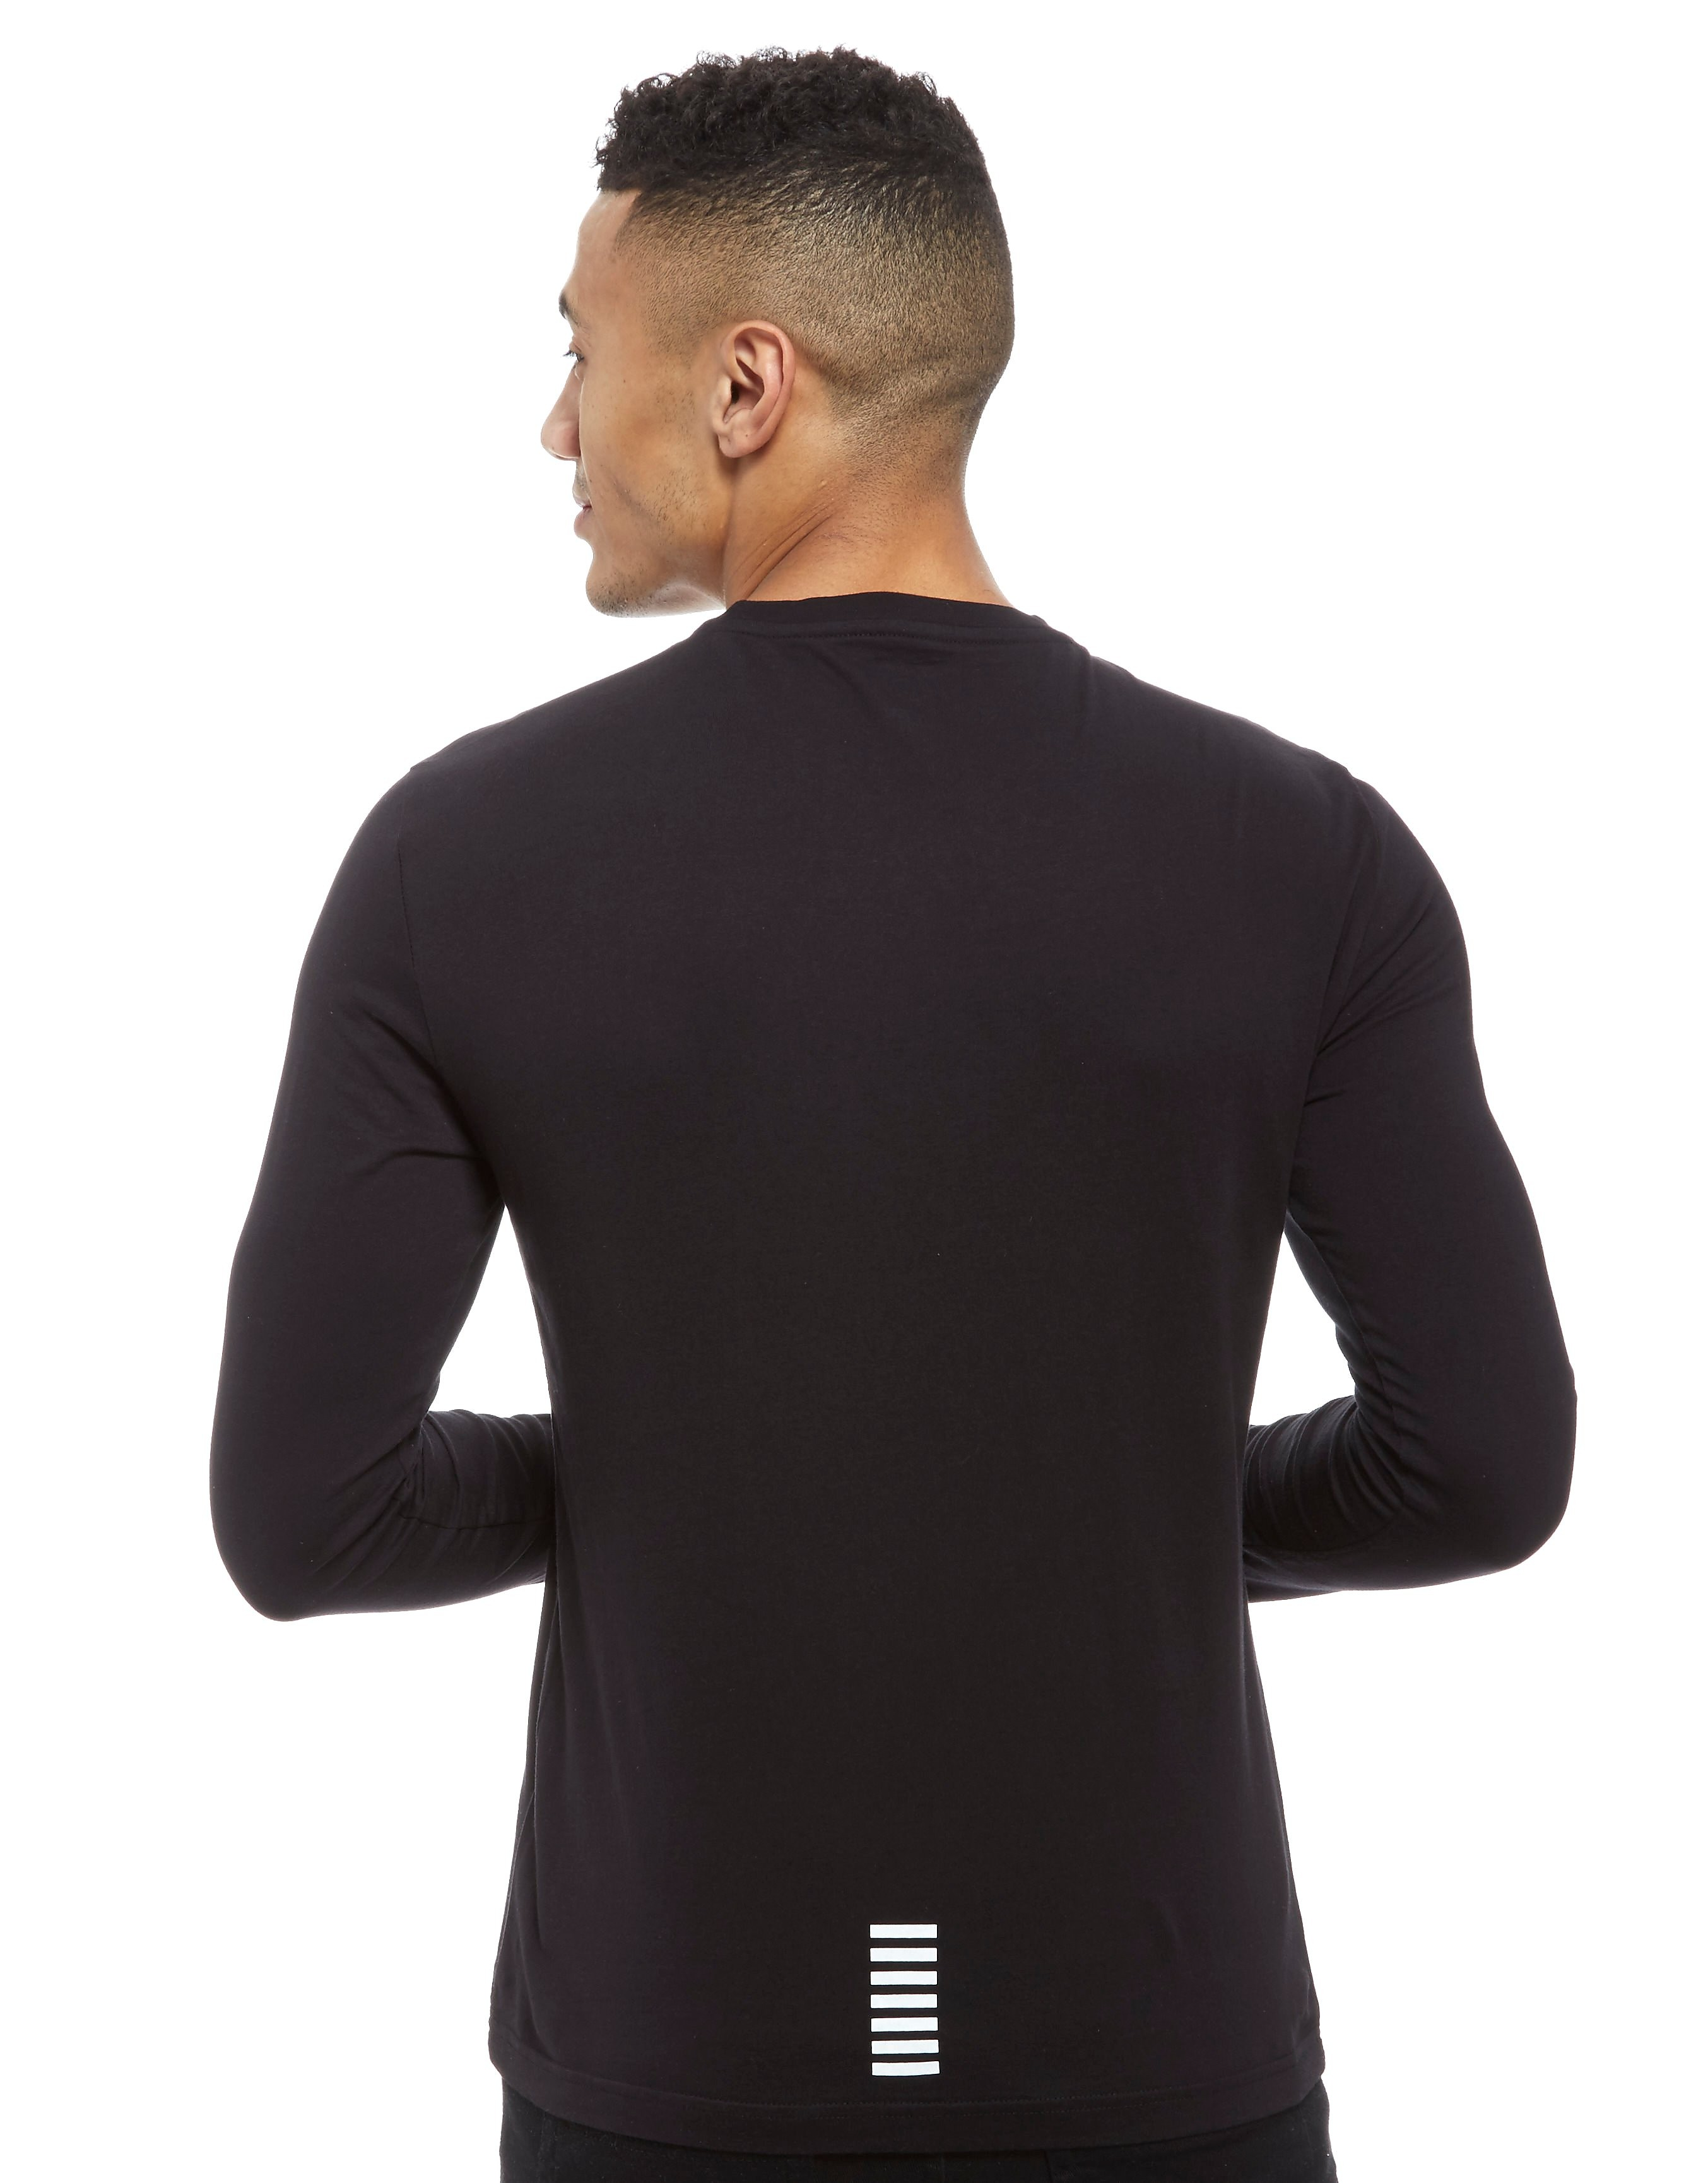 Emporio Armani EA7 Core Long Sleeve T-Shirt